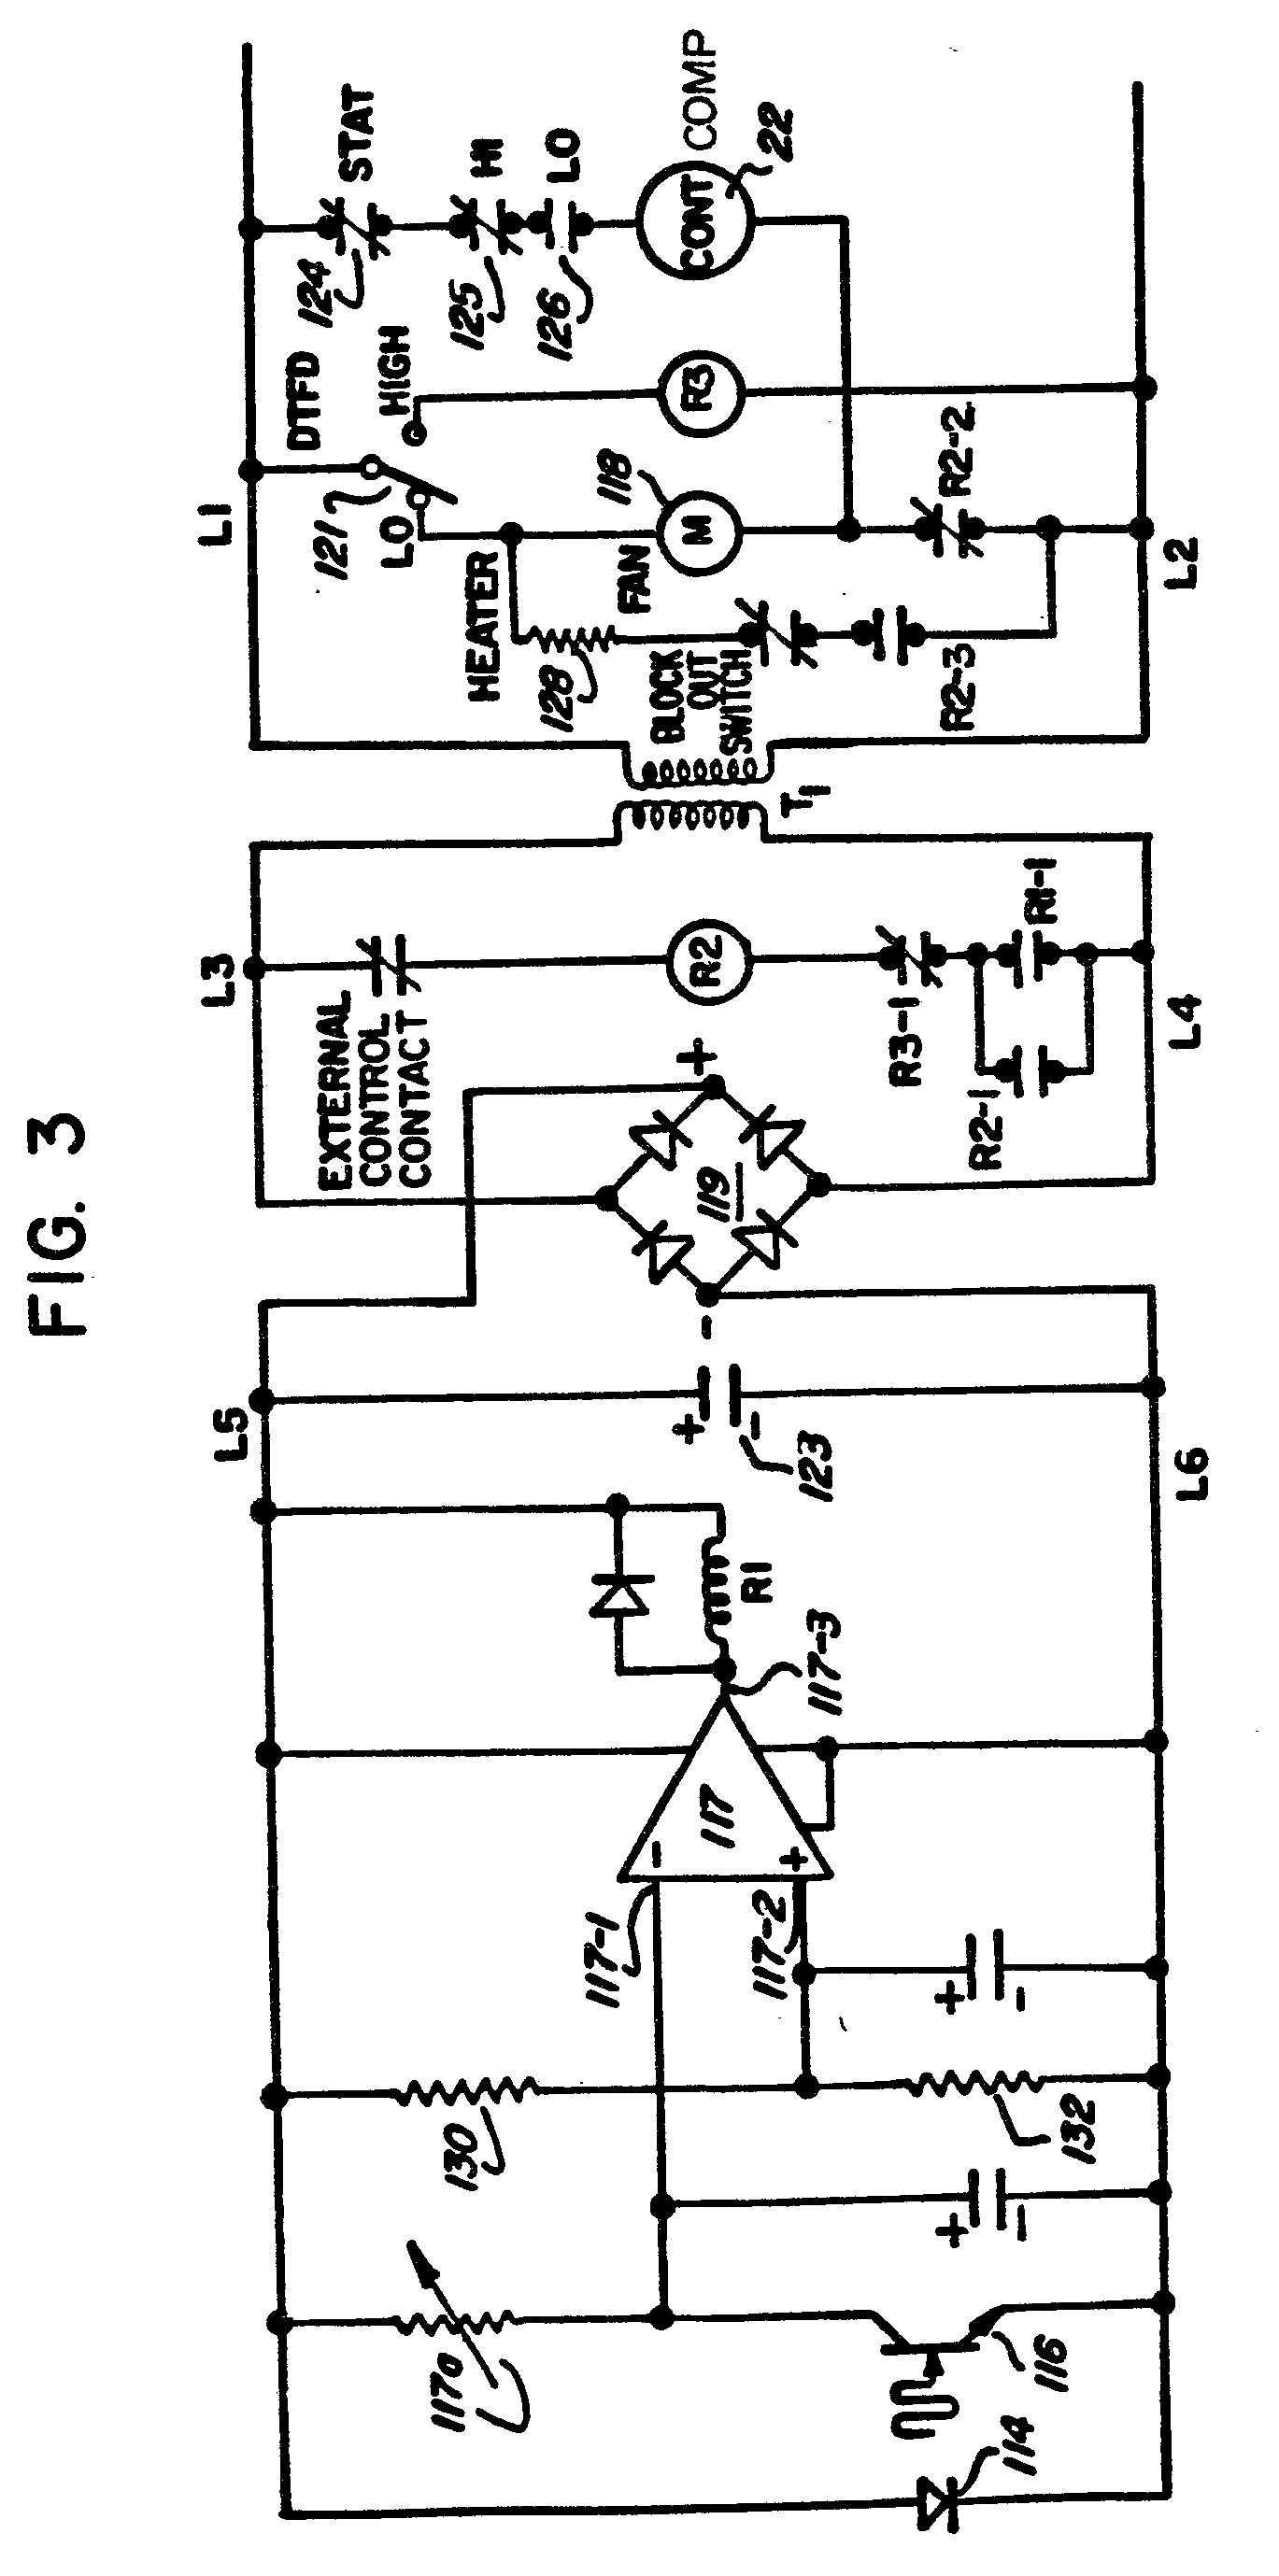 36 volt wiring diagram for forward and reverse switch for 1985 club car wiring diagram for evaporator russell evaporator wiring diagram ae ae16-46b